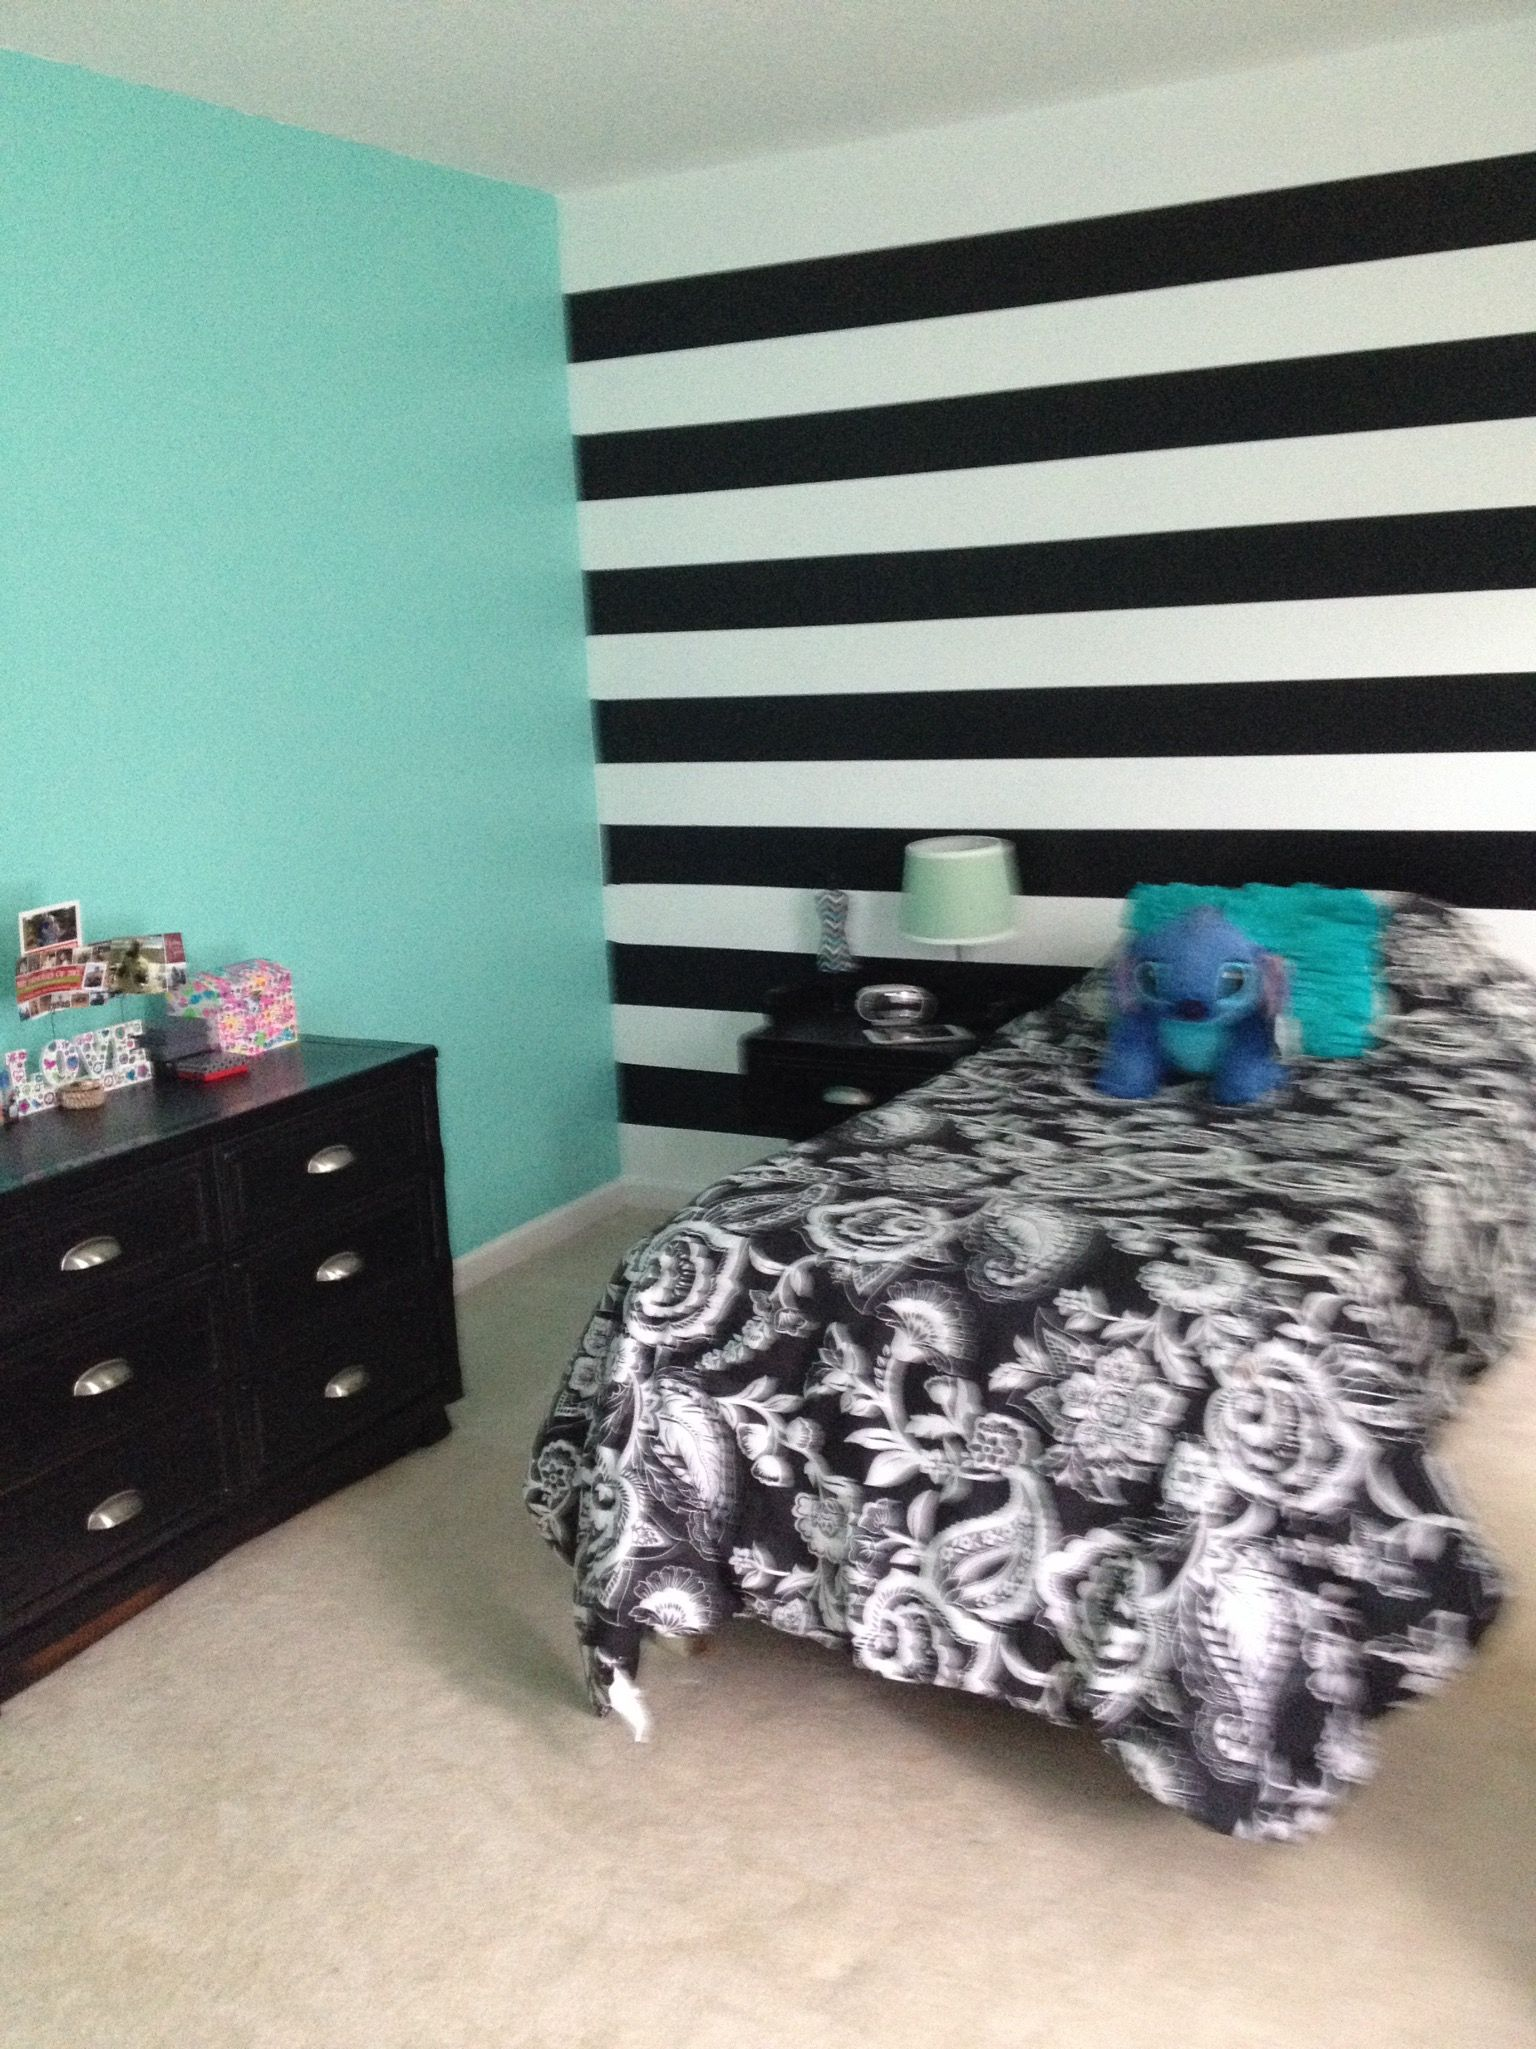 Turquoise On Three Walls Black And White Horizontal Stripe On One Accented With Black White And Sha Striped Walls Bedroom Teal Bedroom Striped Accent Walls